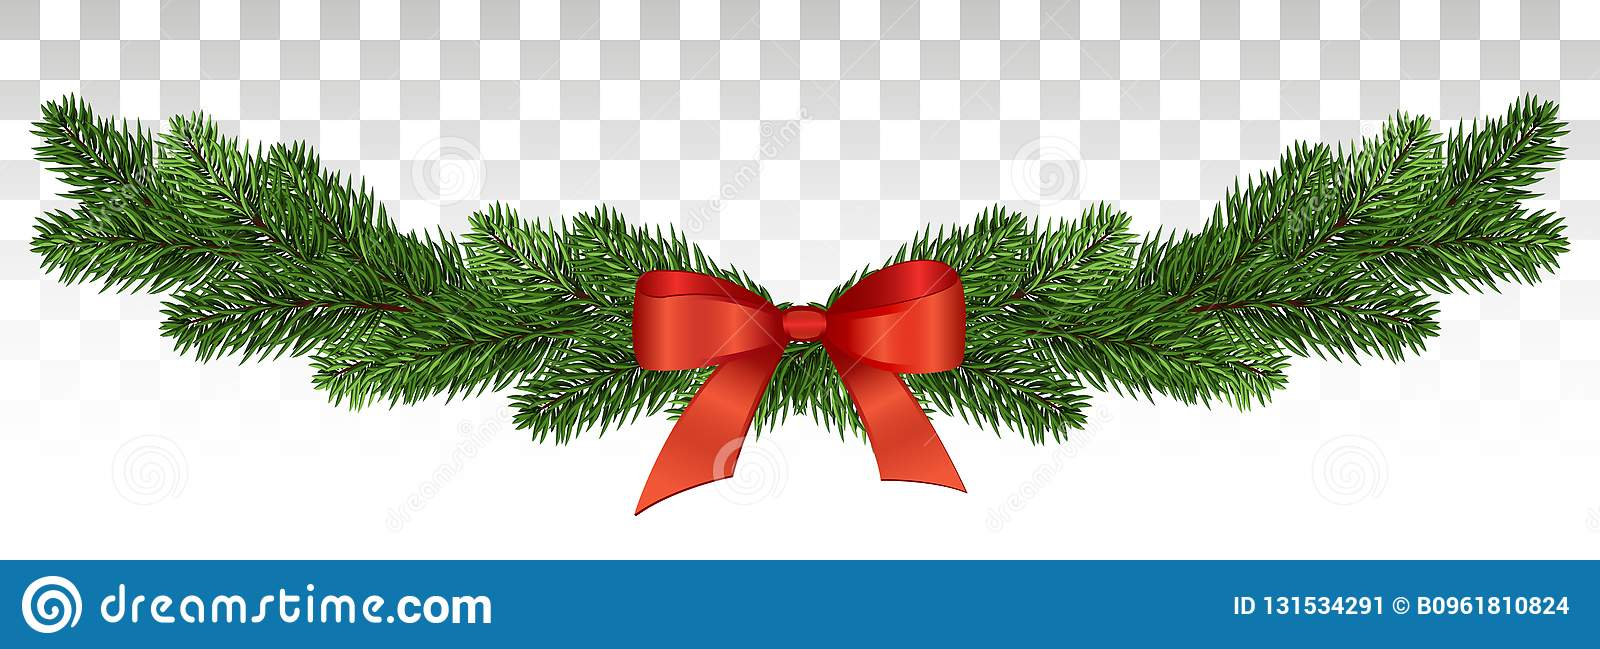 banner with christmas tree garland and ornaments for flyers